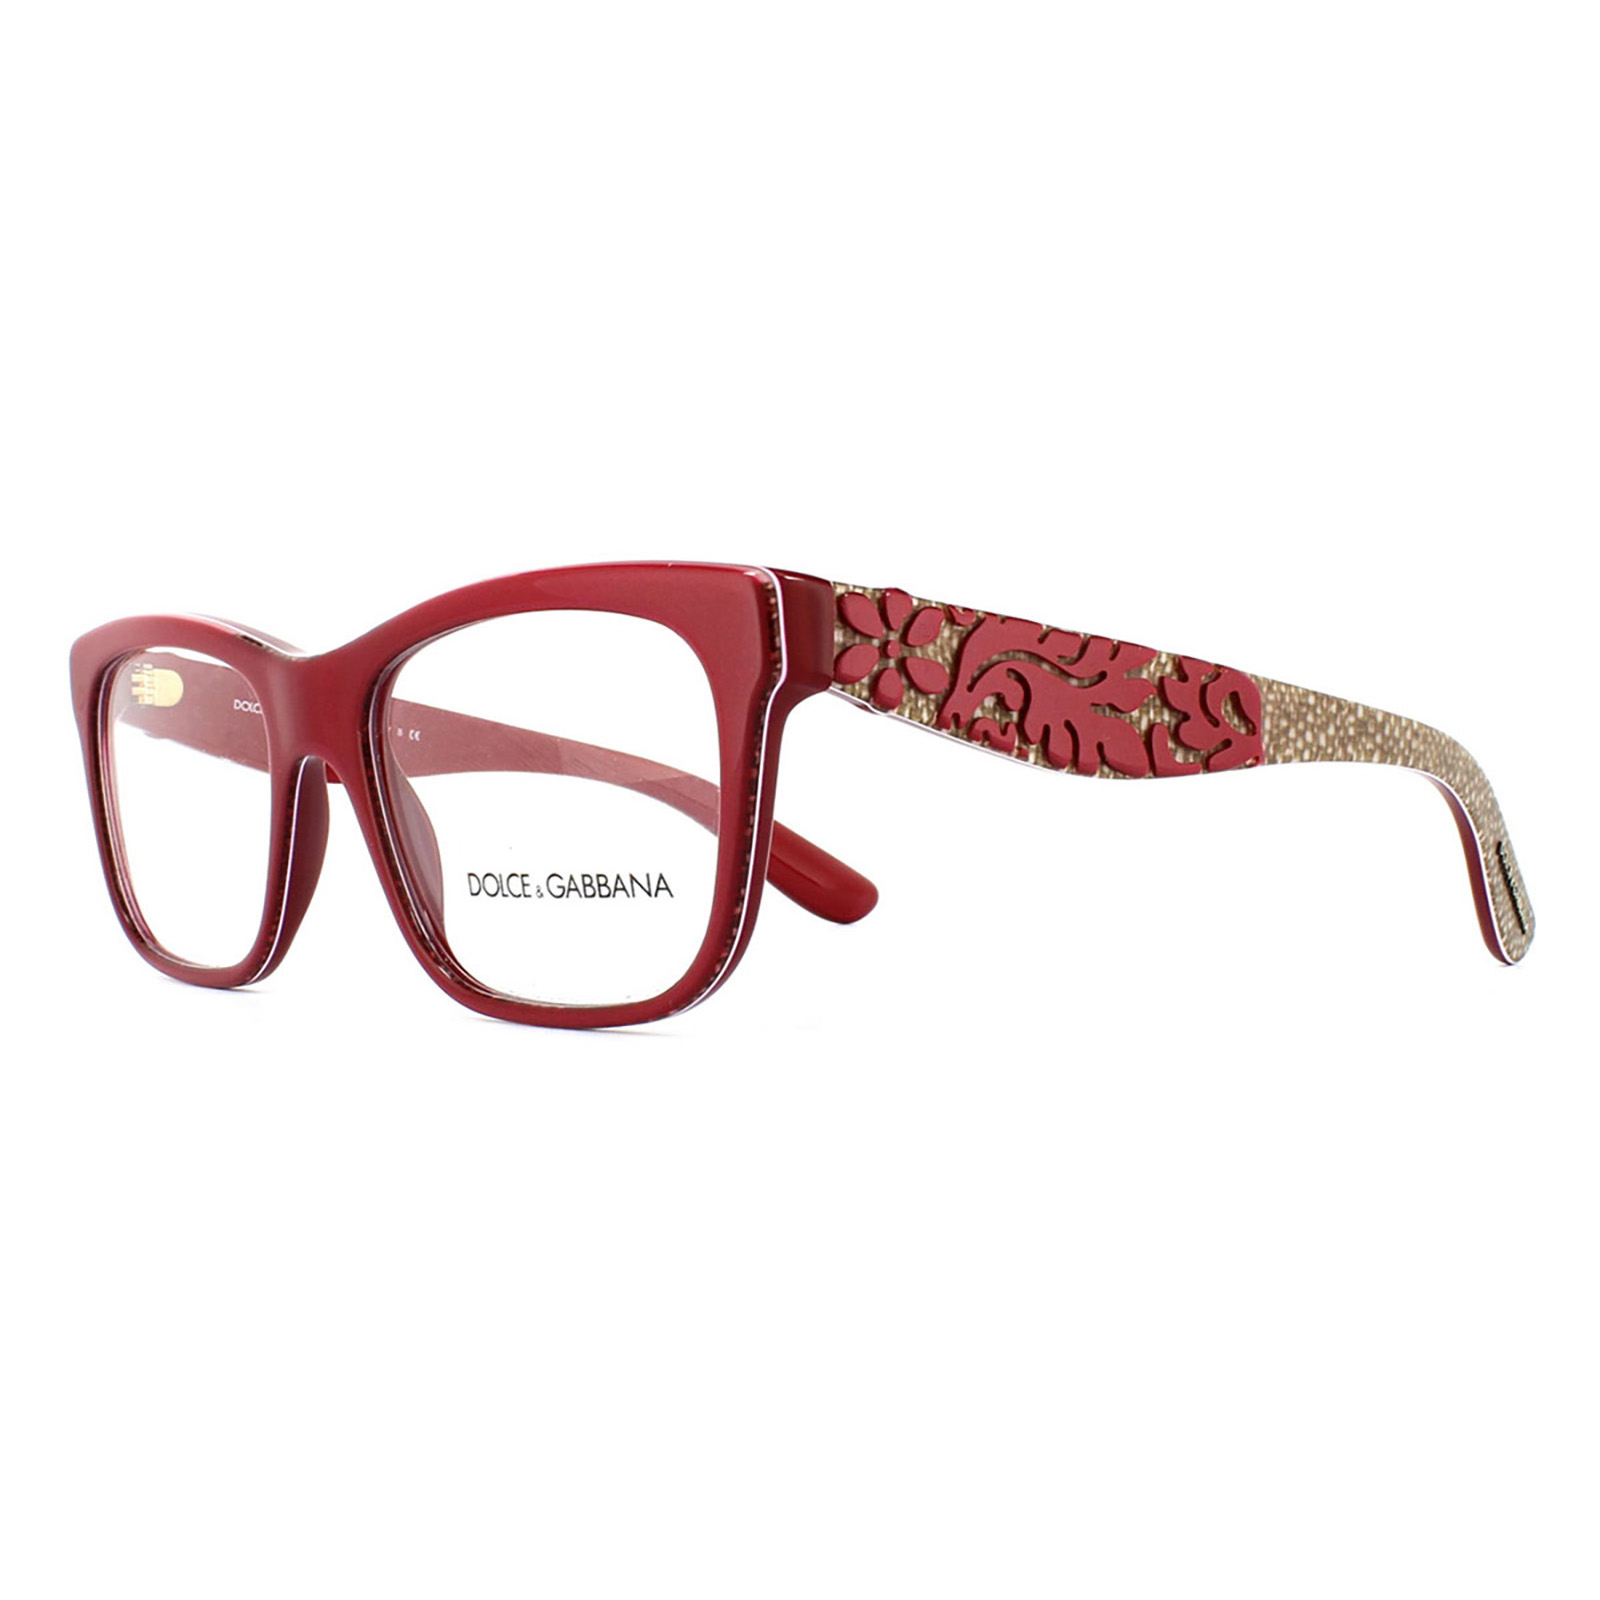 dolce and gabbana glasses frames 3239 2999 top red texture tissue womens 50mm - Dolce And Gabbana Glasses Frames